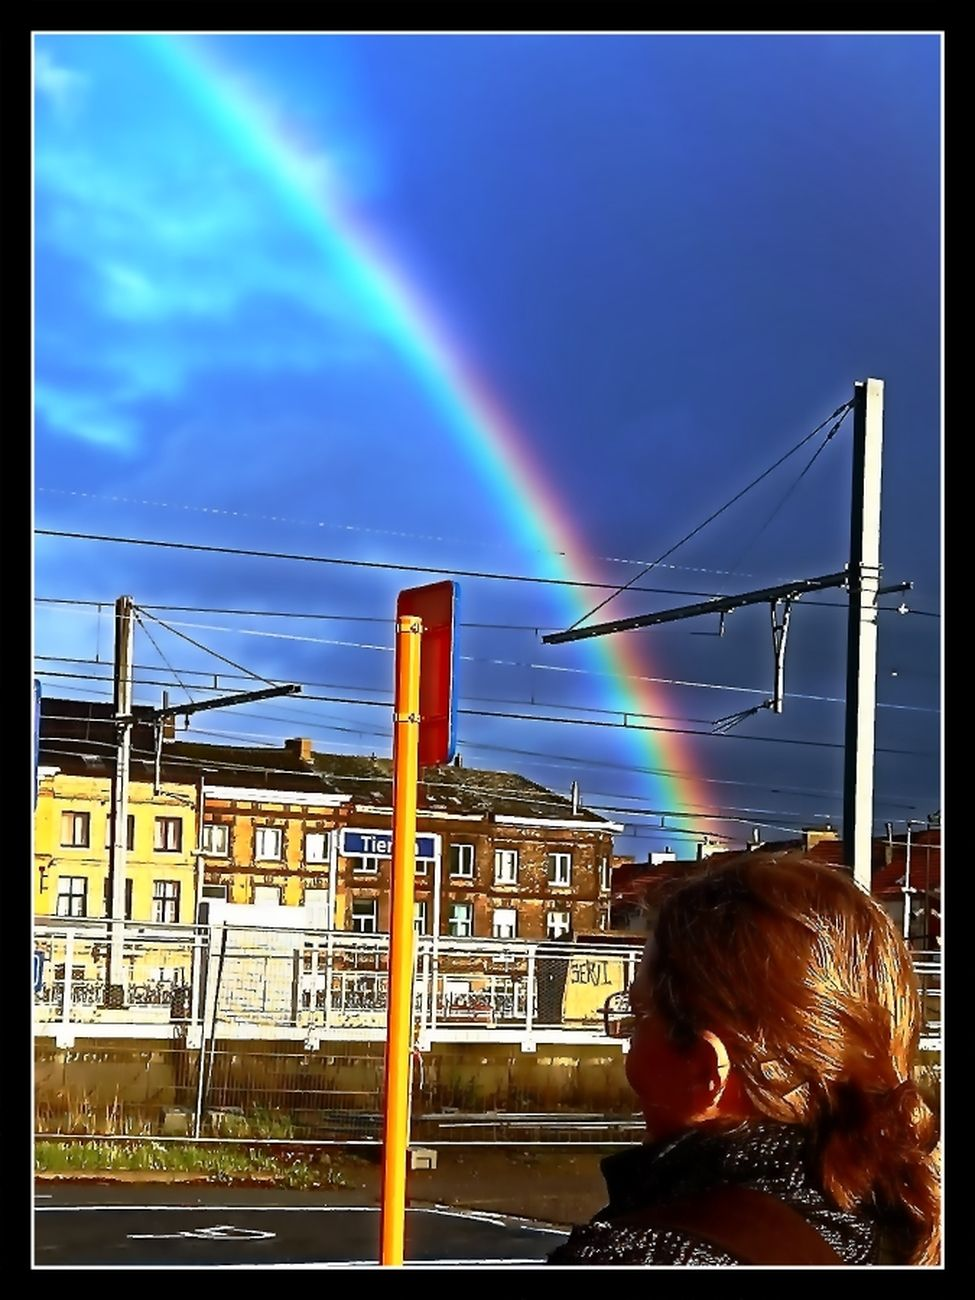 I didn't want to miss this beautiful rainbow Sincerely Theo-Herbots Photographer https://theoherbots.wixsite.com/website-80